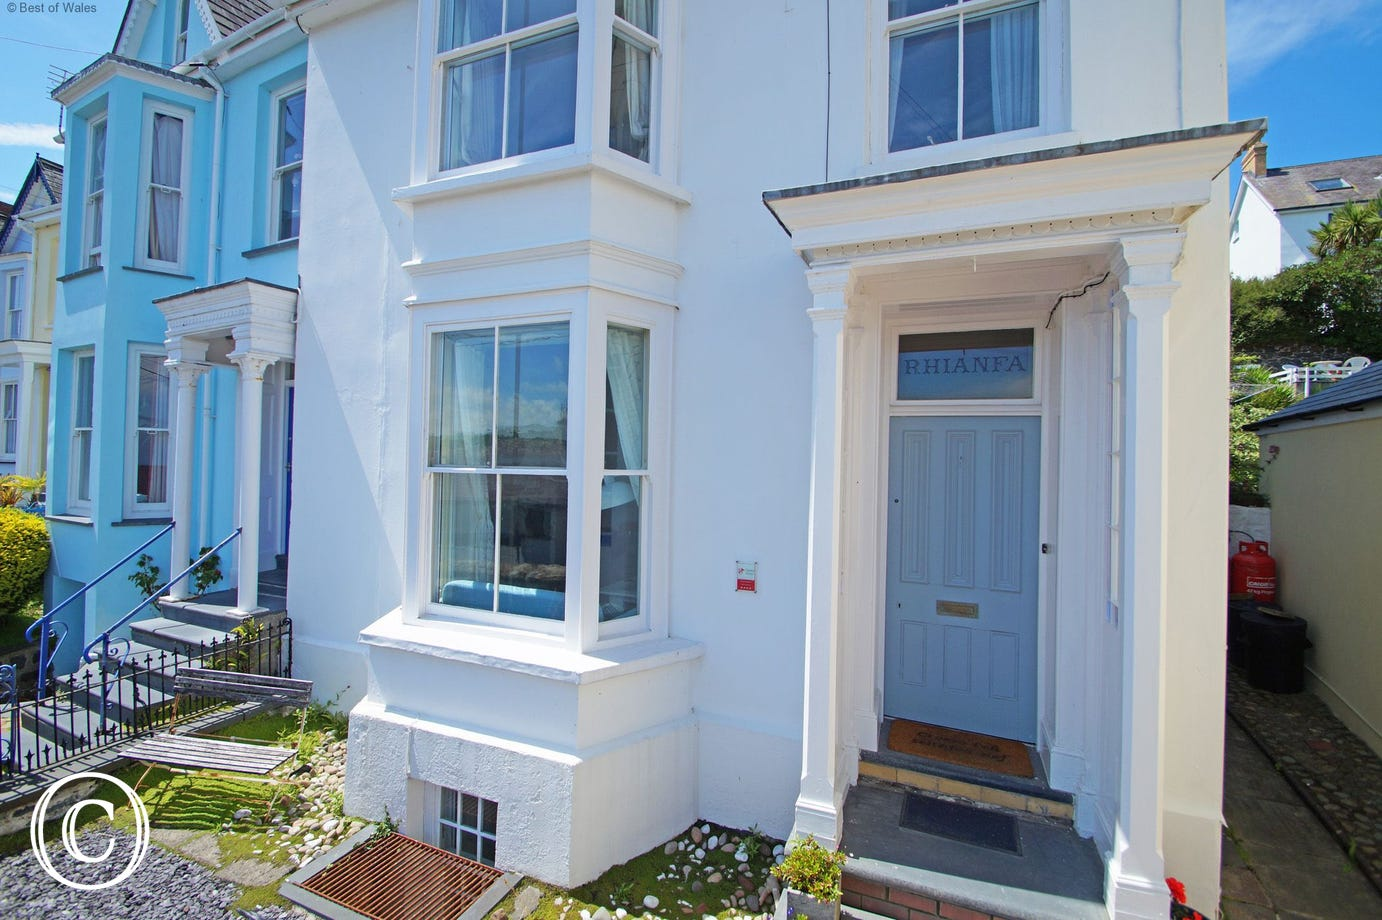 Large self catering house in New Quay, West Wales